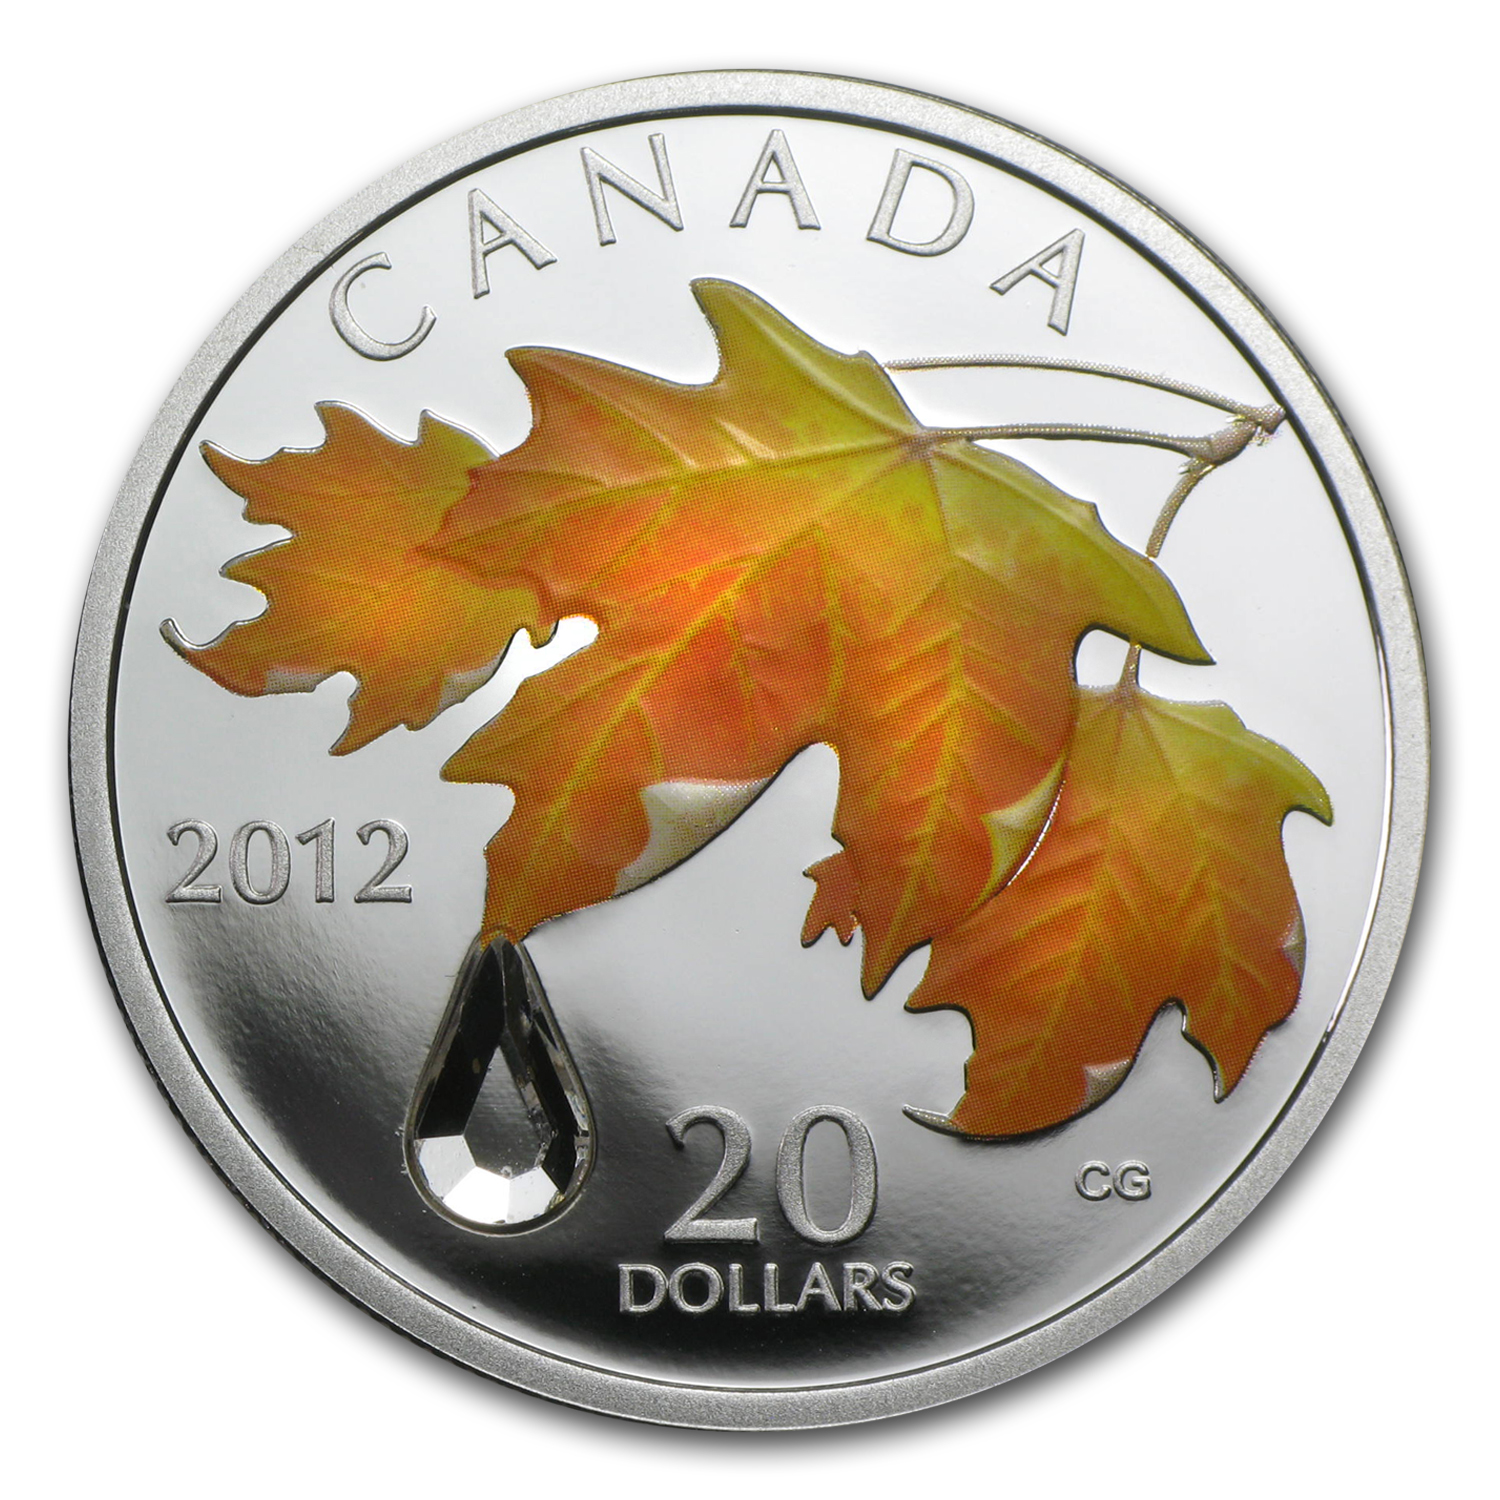 2012 Canada 1 oz Silver $20 Crystal Raindrop Sugar Maple